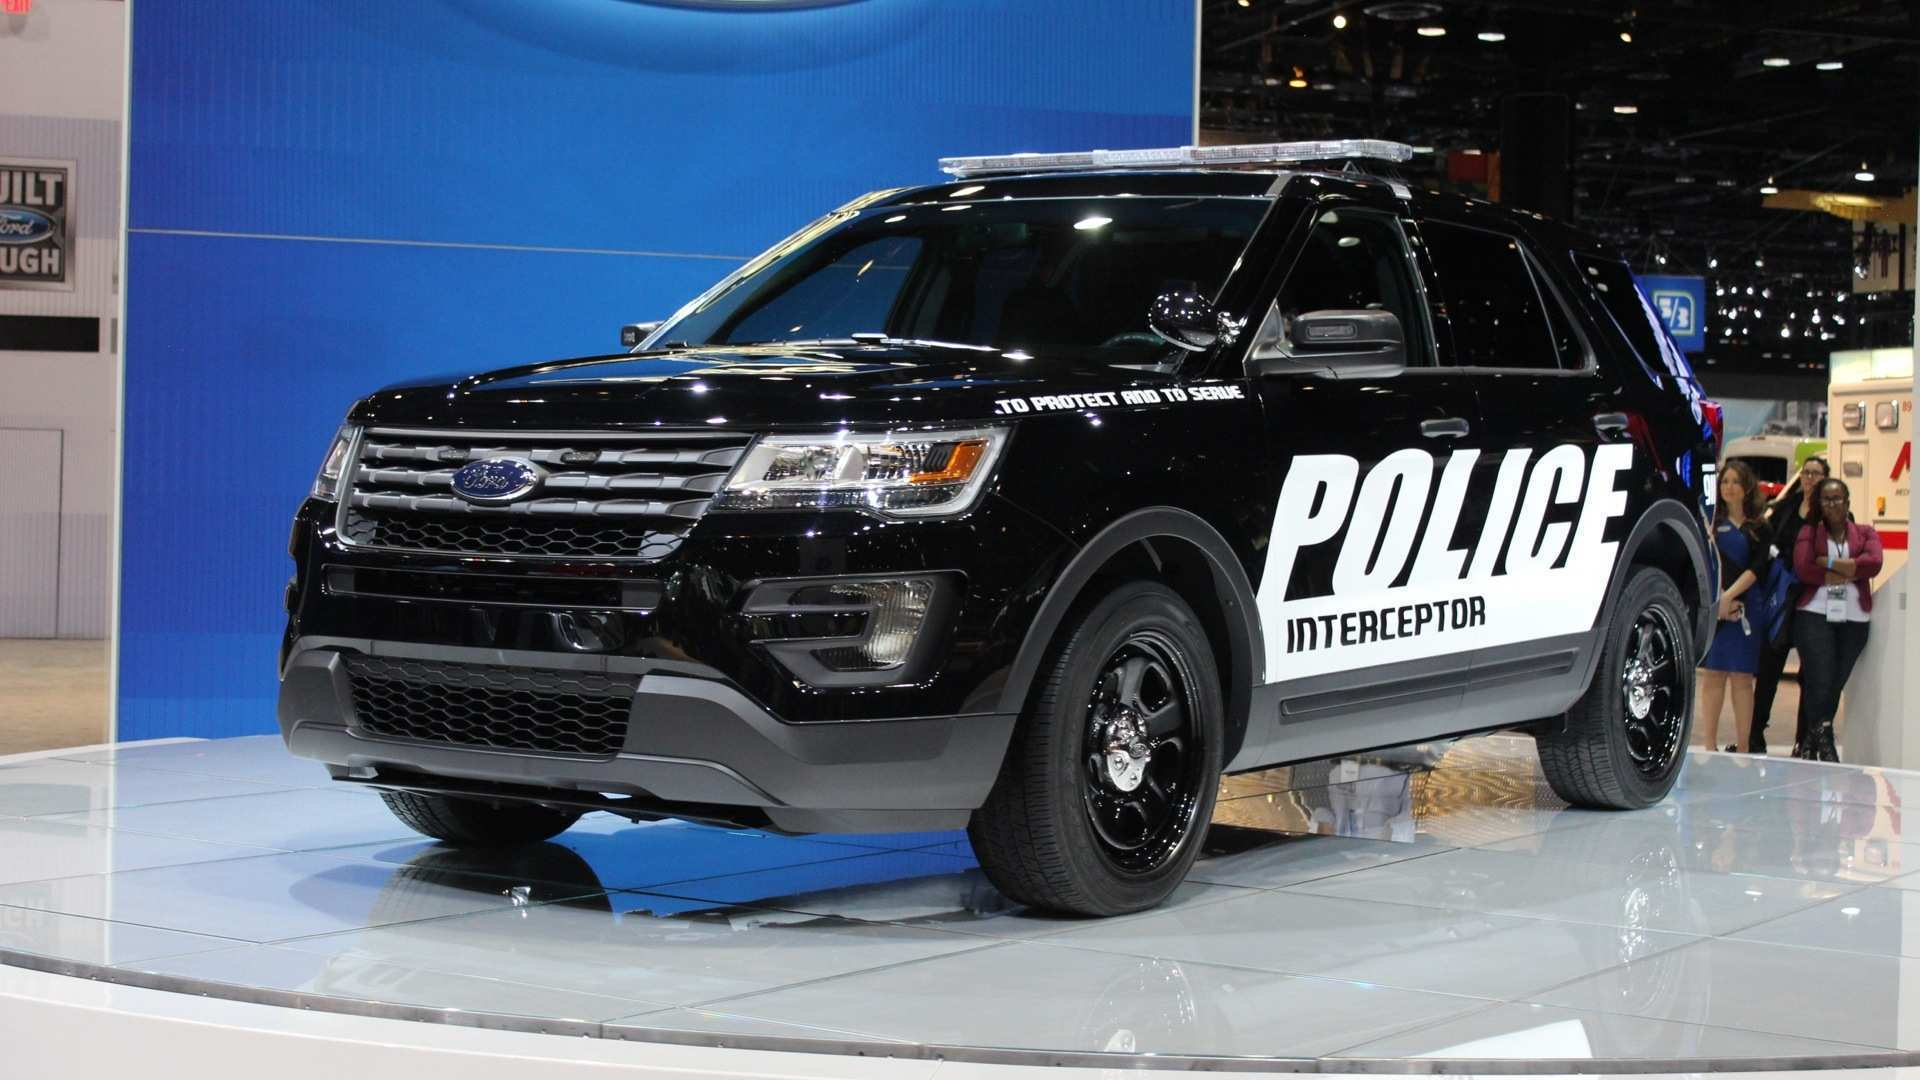 19 All New 2019 Ford Interceptor Suv Configurations for 2019 Ford Interceptor Suv